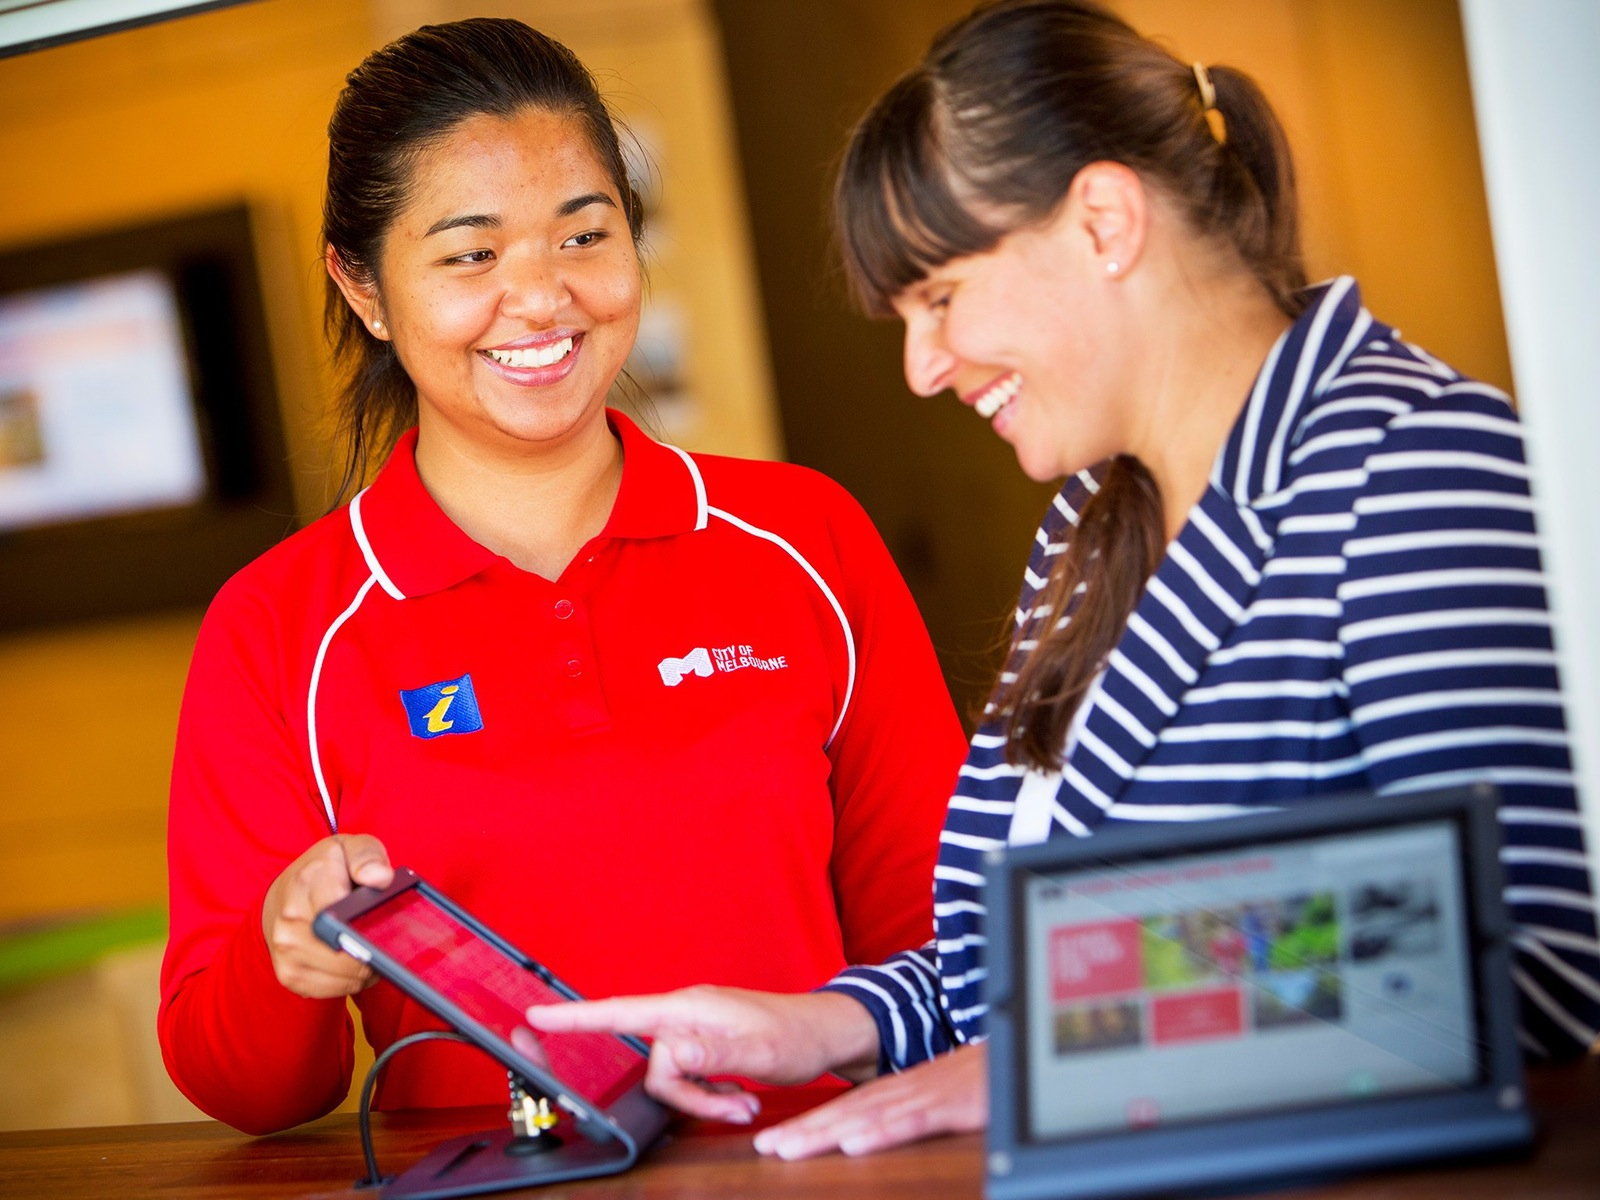 A smiling City of Melbourne volunteer in a red shirt assisting a female visitor to use an ipad